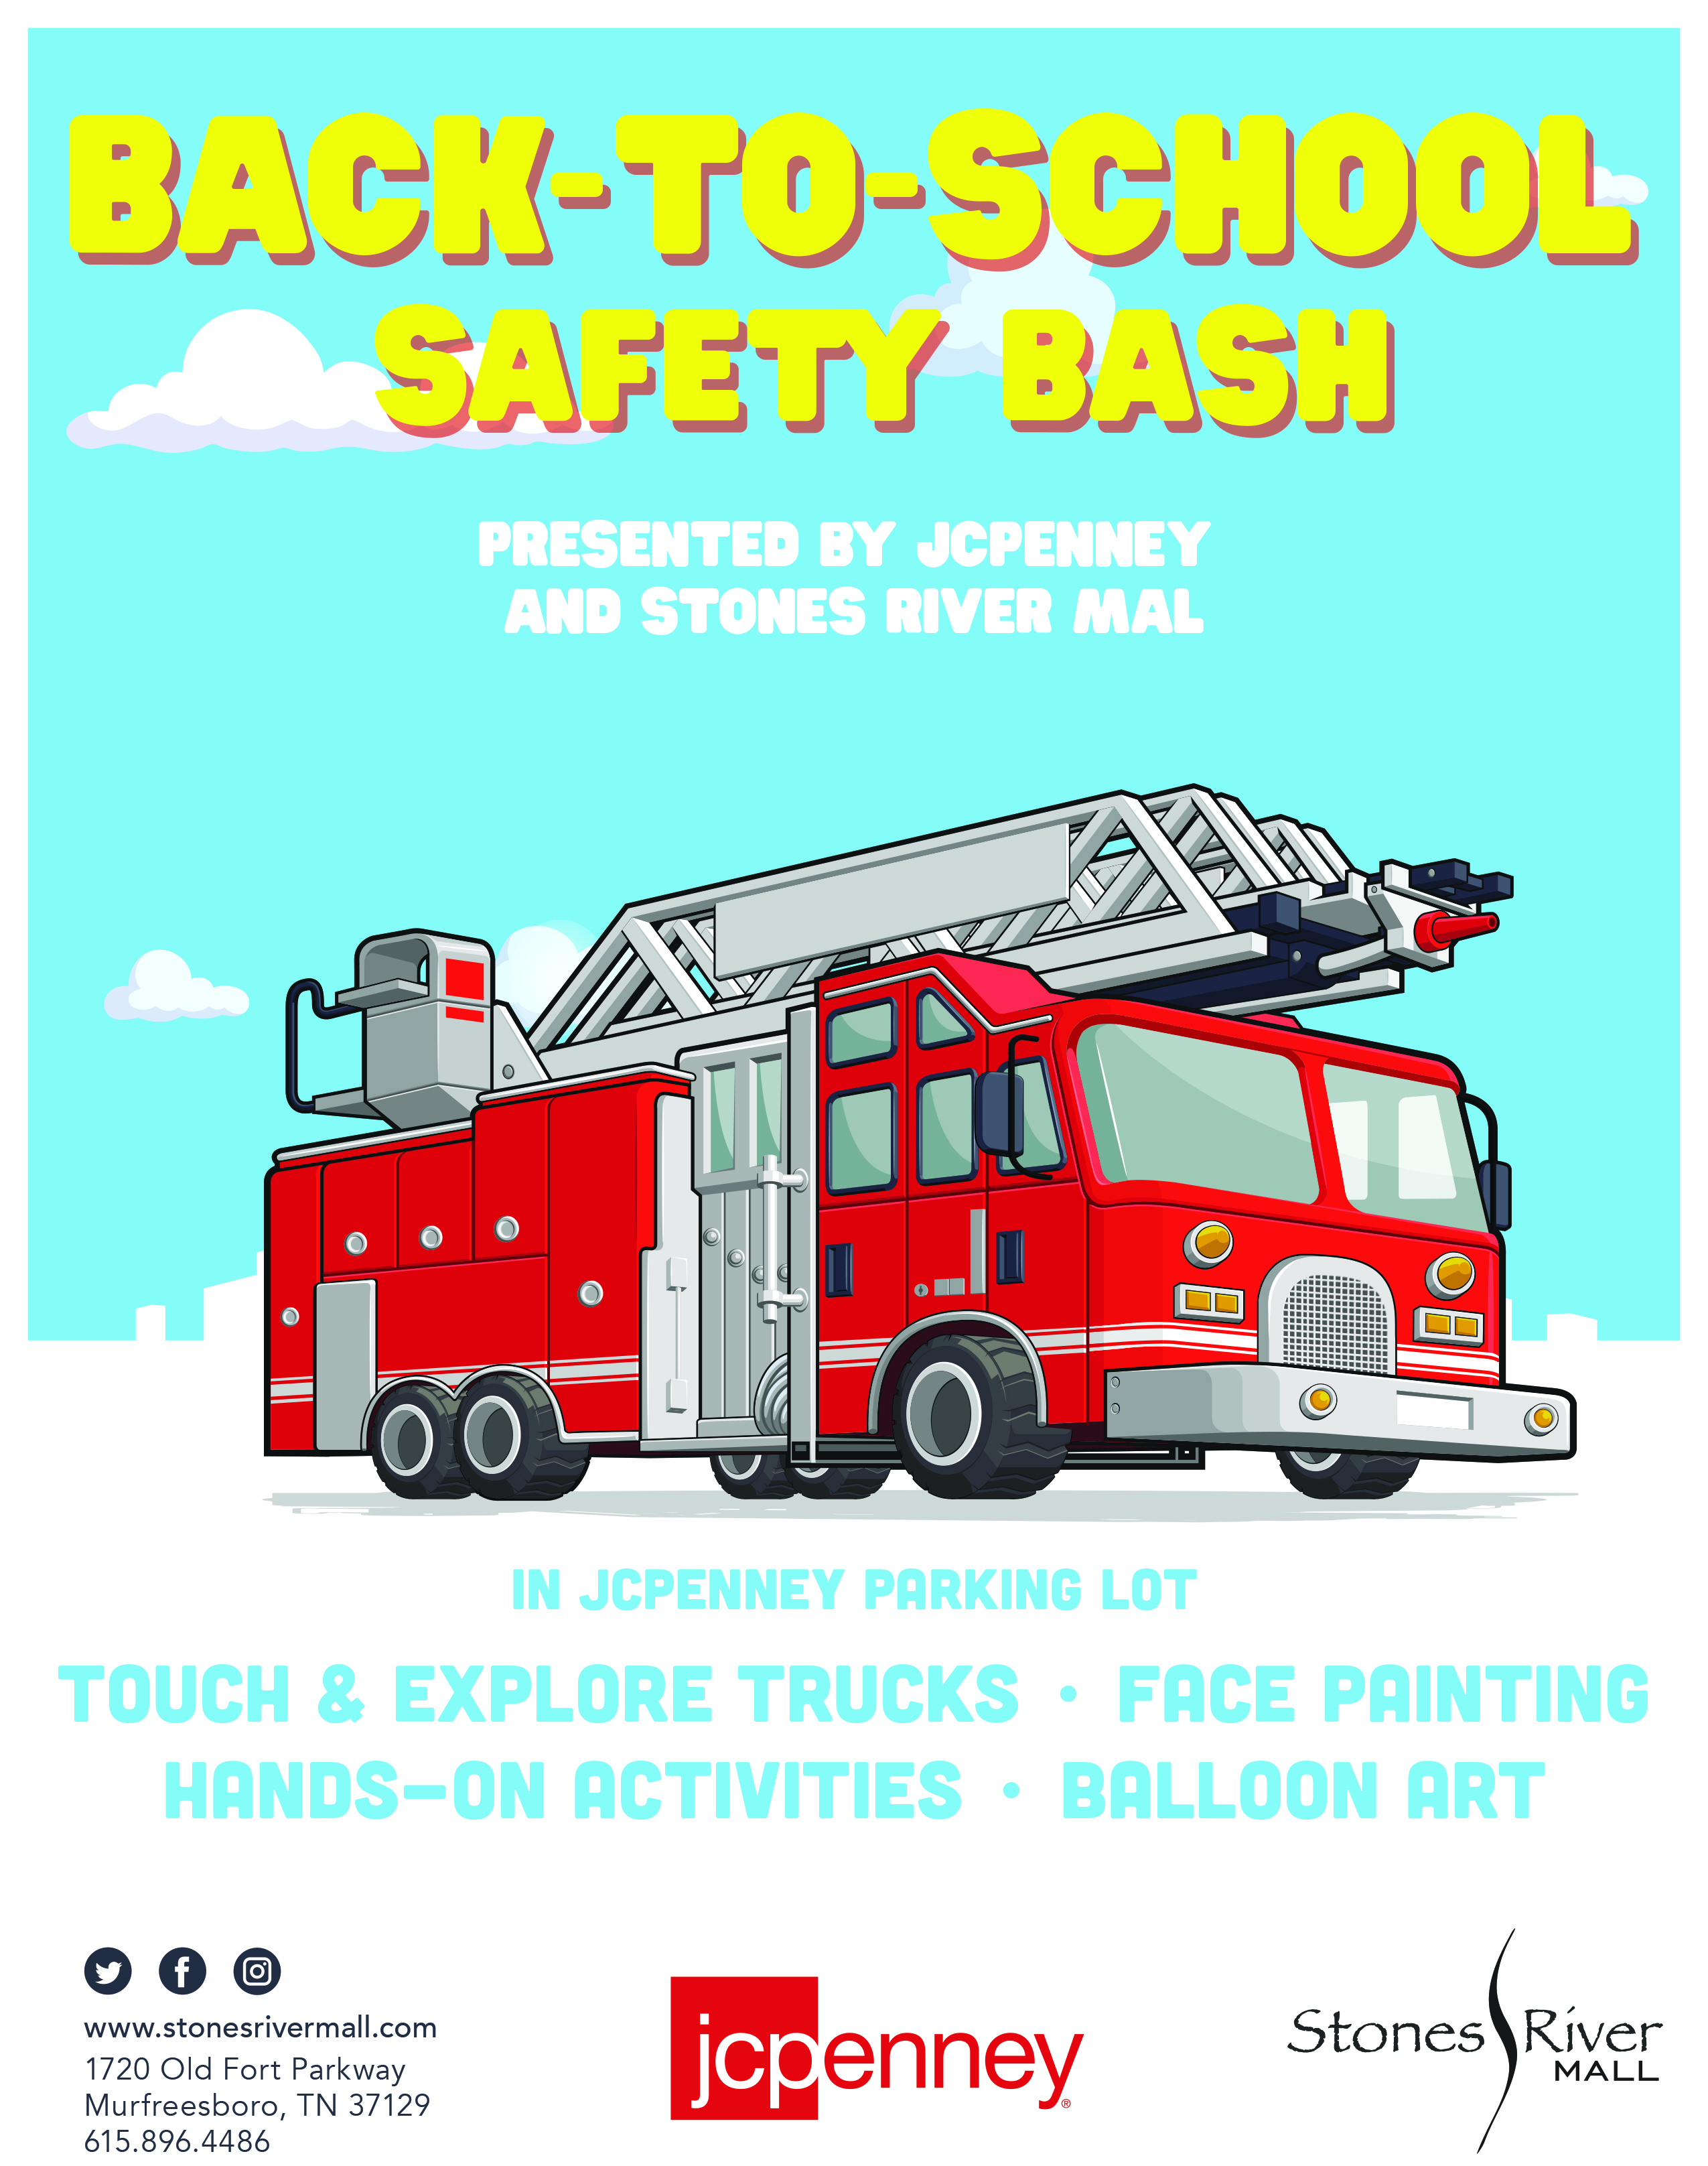 Stones River Mall, JCPenney present Back-to-School Safety Bash on ...